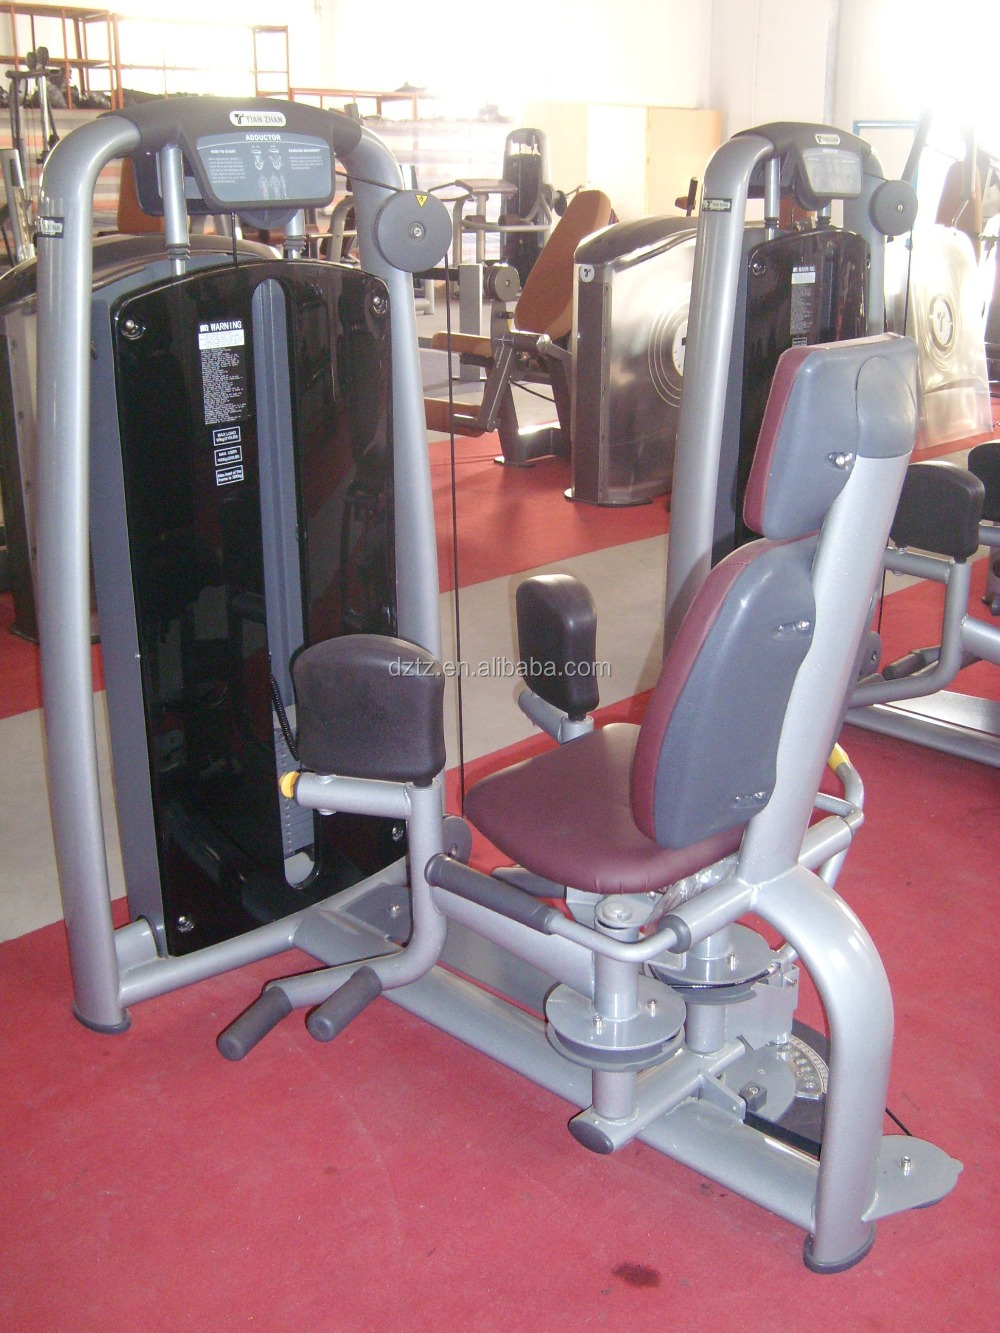 Adductor/Inner thigh TZ-6014 gym equipment fitness machine Strength Equipment